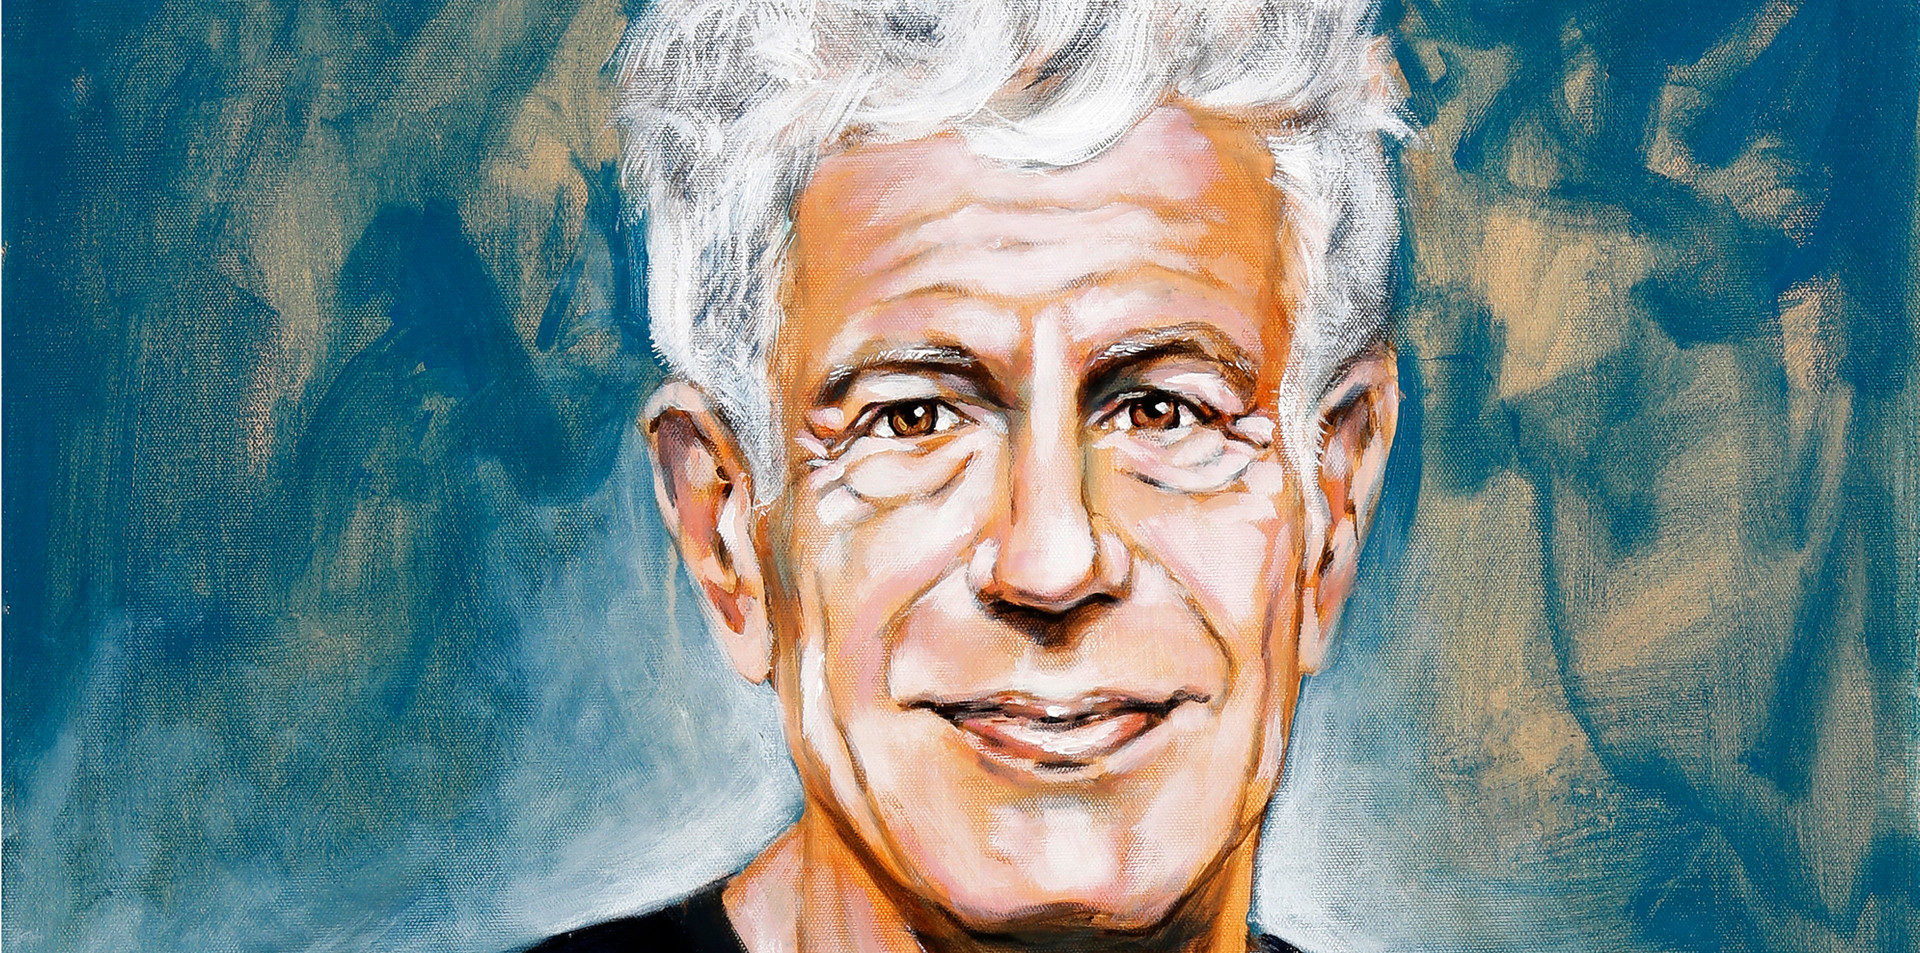 The Talented Anthony Bourdain